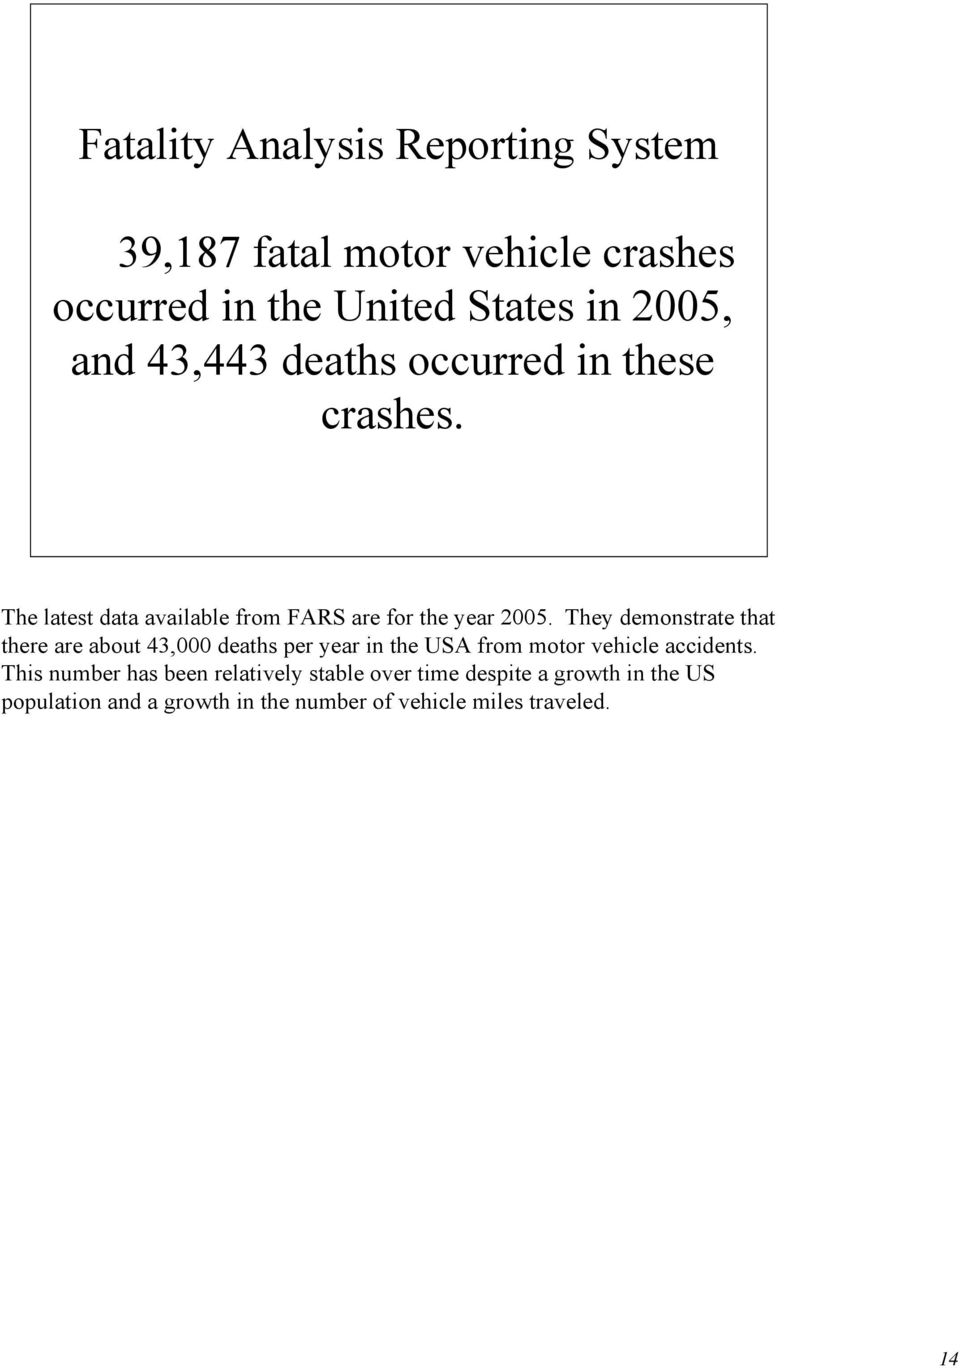 They demonstrate that there are about 43,000 deaths per year in the USA from motor vehicle accidents.